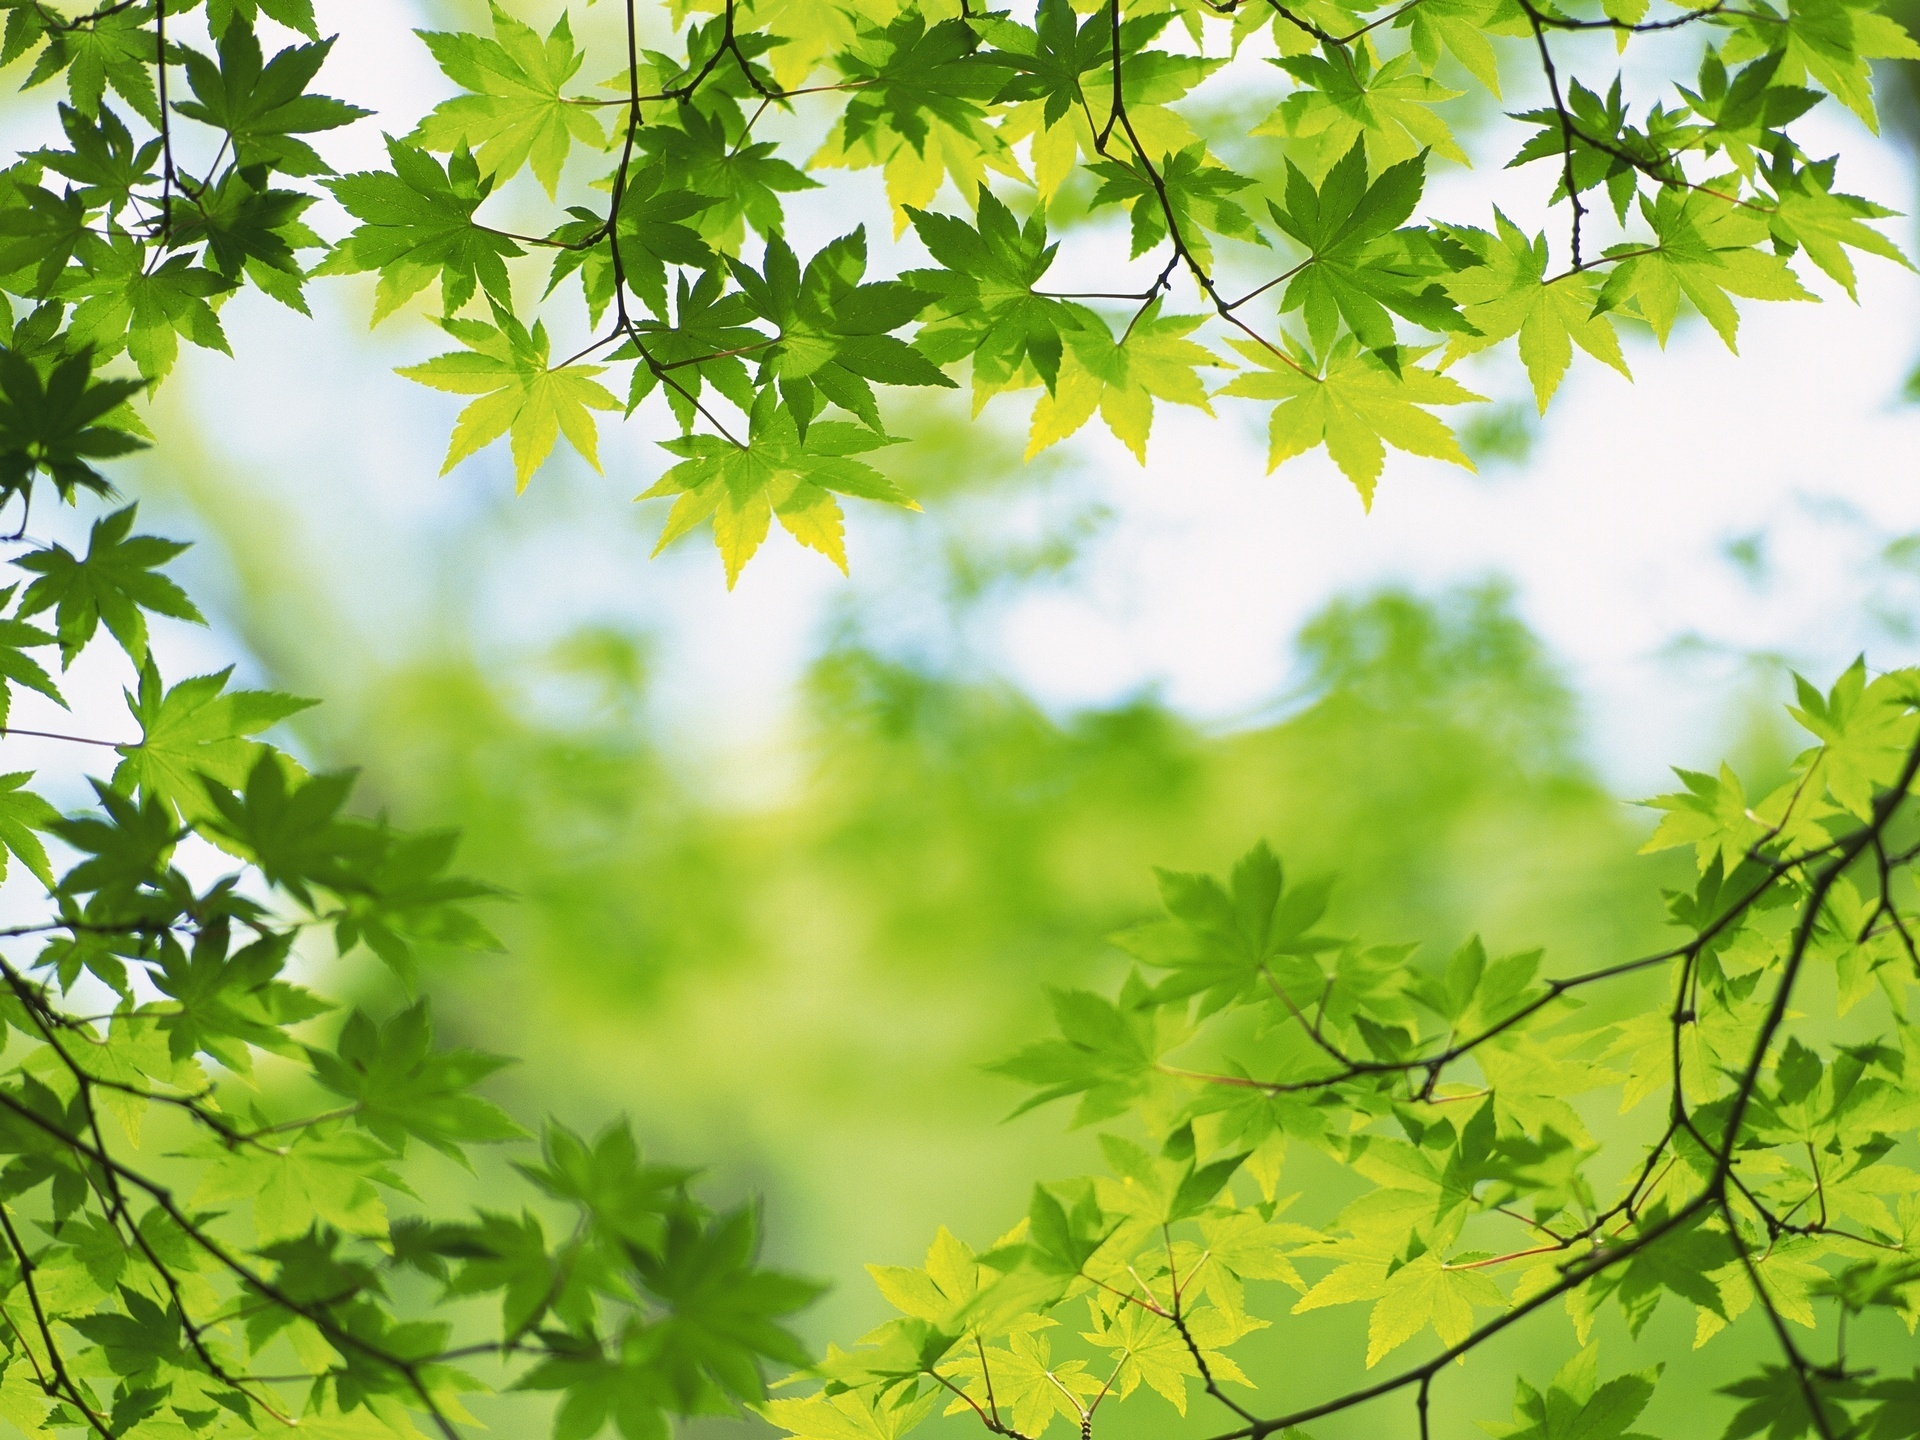 Green images Green leaves HD wallpaper and background photos 22176085 1920x1440